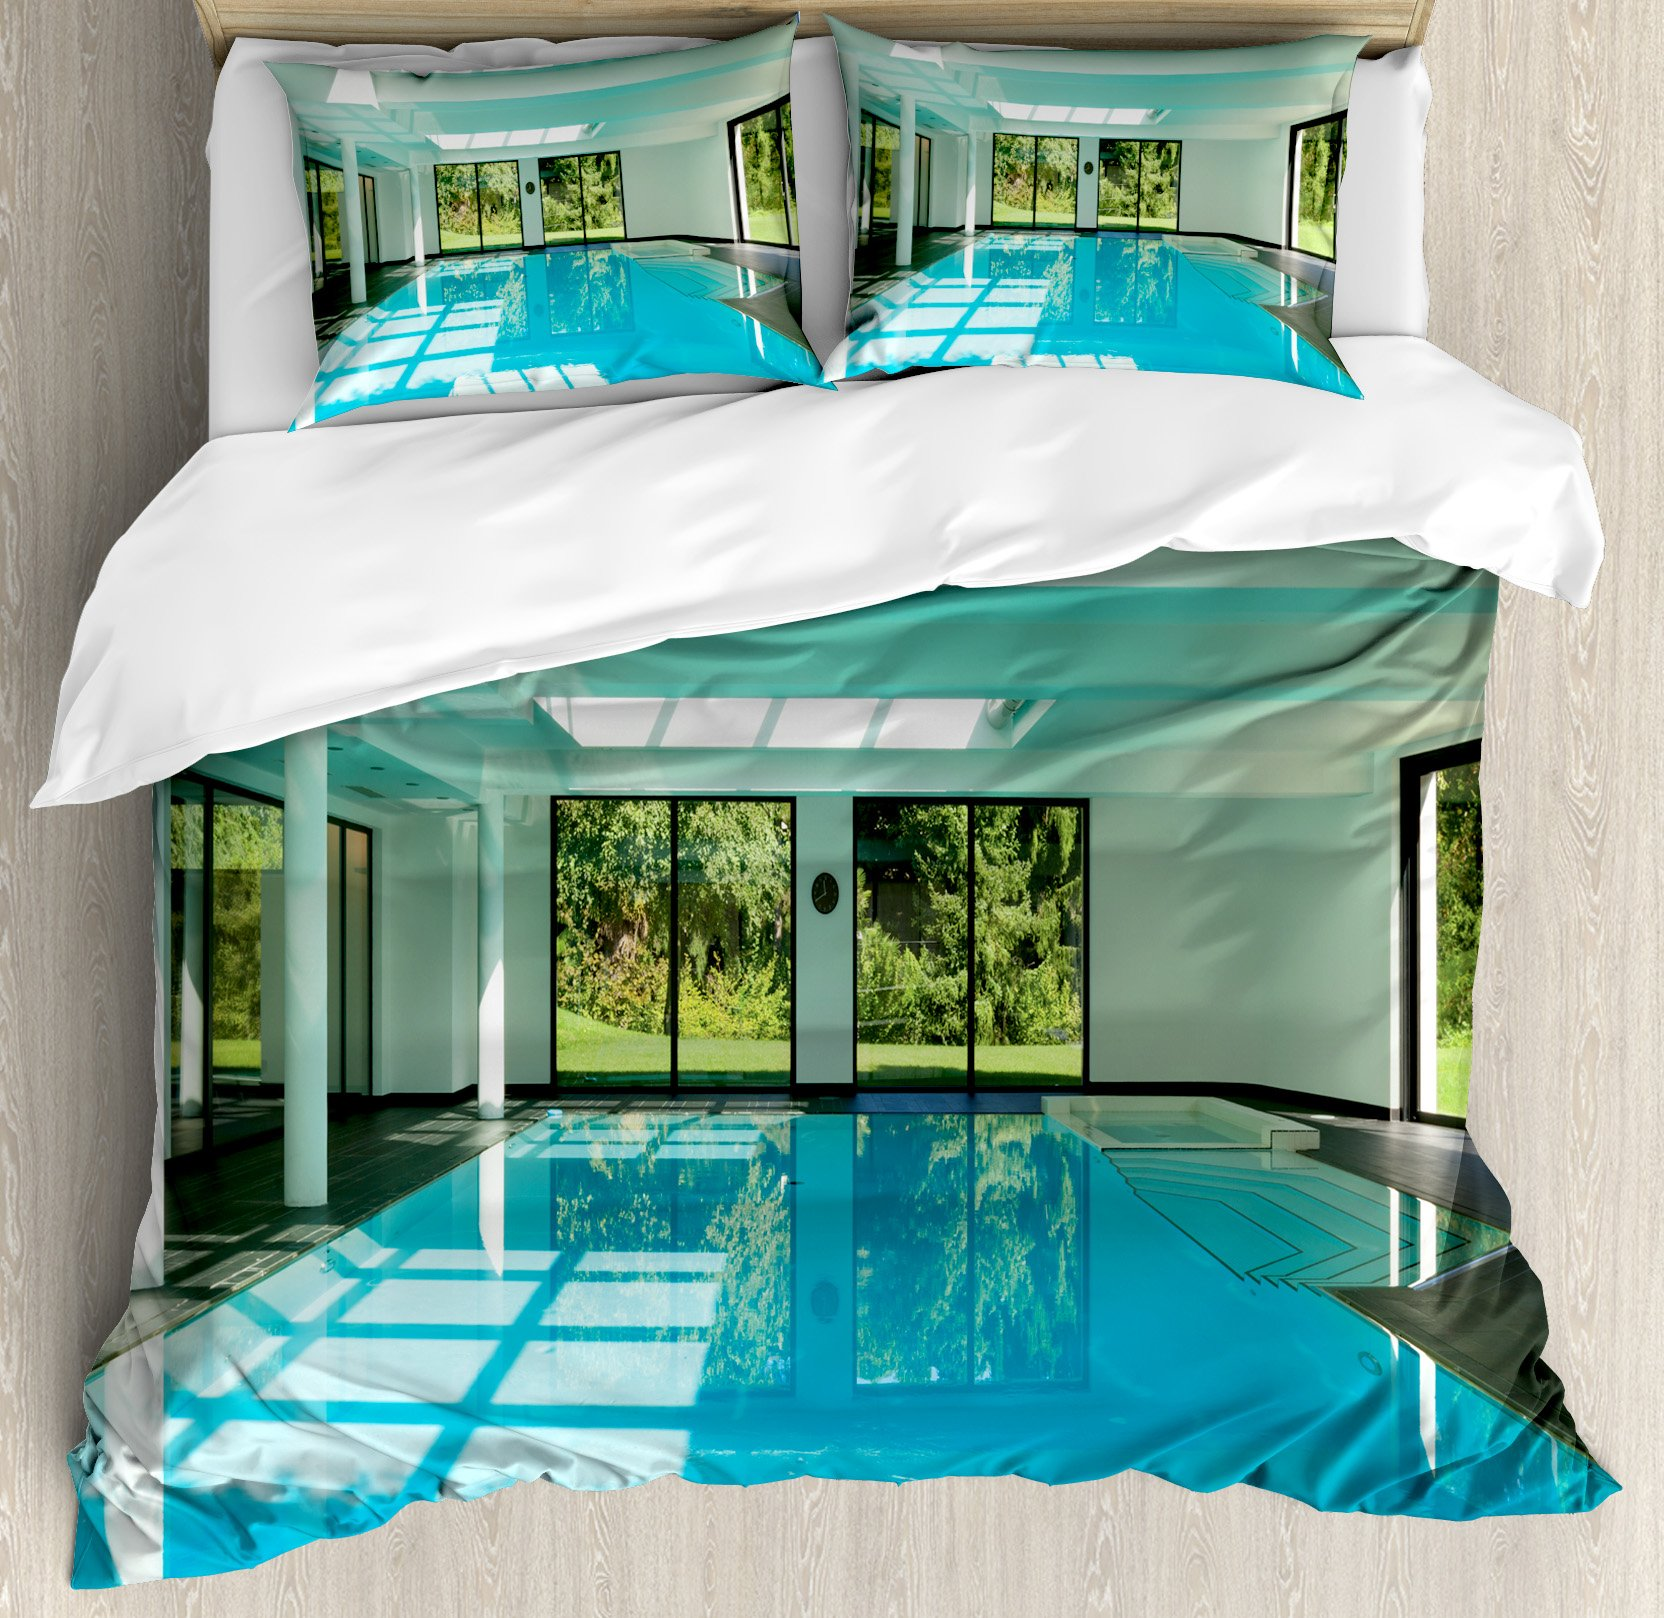 House Decor Duvet Cover Set Queen Size by Ambesonne, Indoor Swimming Pool of a Modern House with Spa Window Residential Interior, Decorative 3 Piece Bedding Set with 2 Pillow Shams by Ambesonne (Image #1)